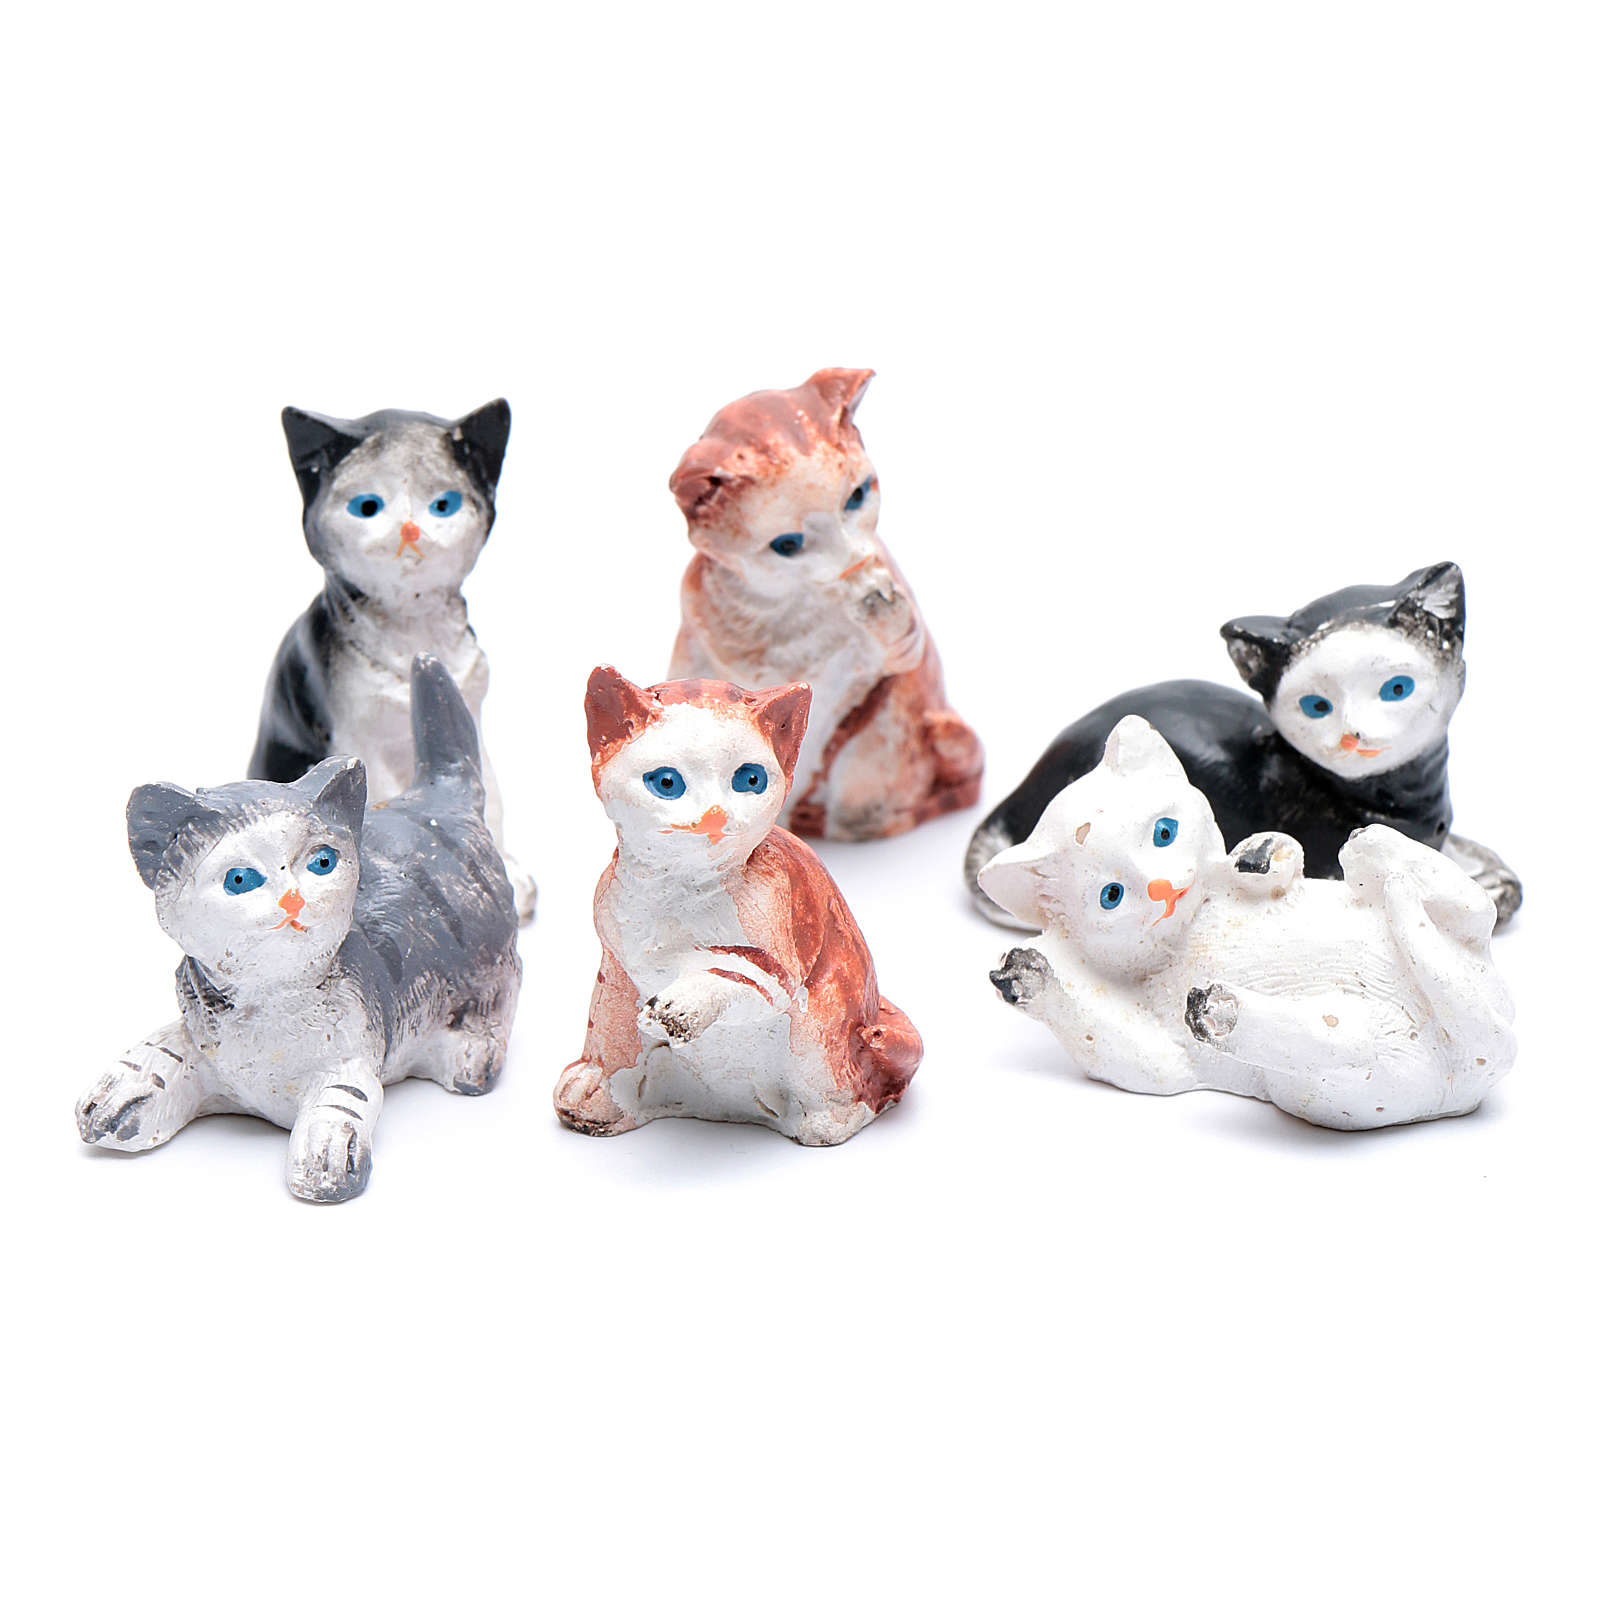 Gatto h 3.5-4 cm presepe assortito 3